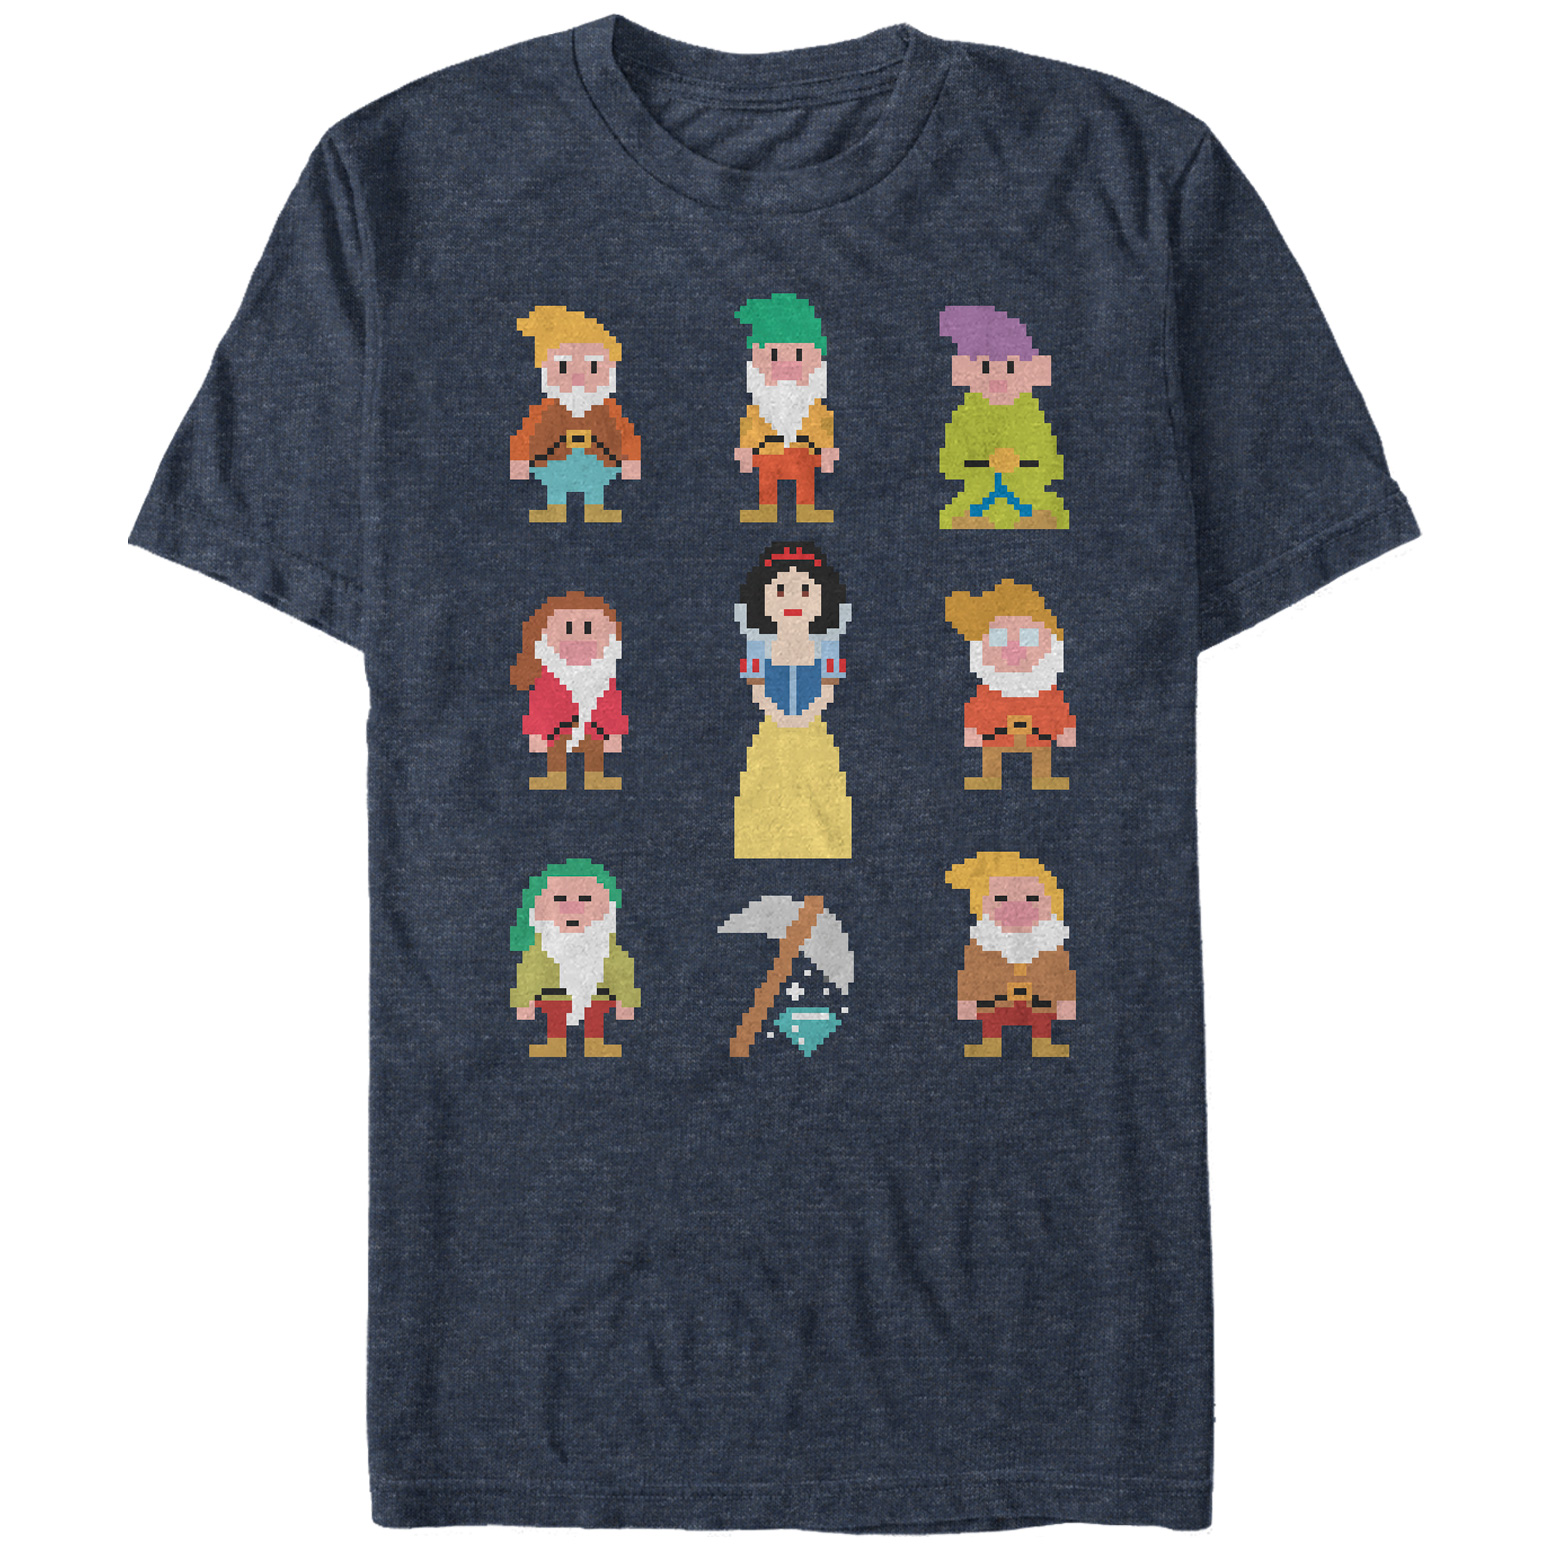 Snow White and the Seven Dwarves Men's Pixels T-Shirt